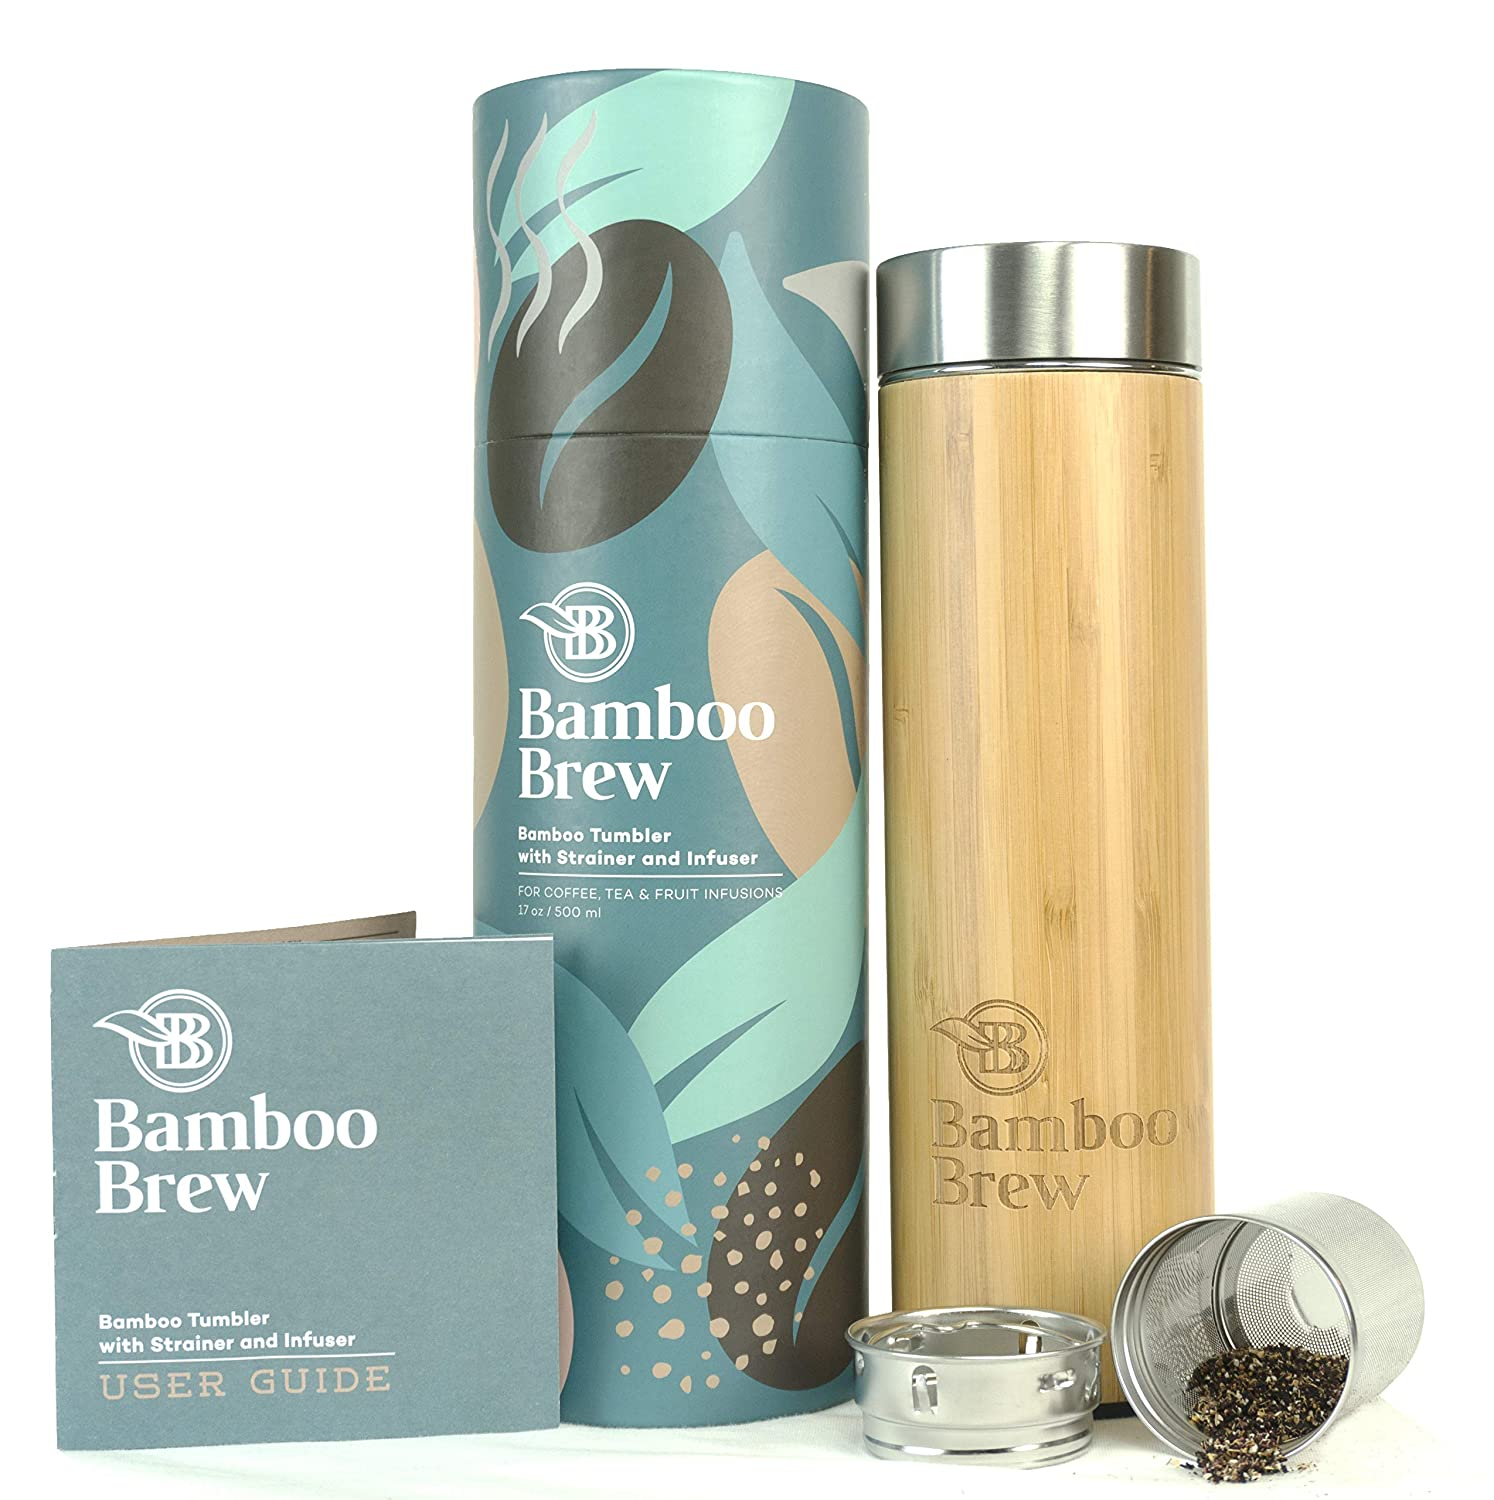 Bamboo Tumbler with Infuser & Strainer 17oz | Stainless Steel Coffee & Tea Flask | Double Wall Vacuum Insulated Travel Mug | Loose Leaf Detox Brew & Fruit Infusions | Brand New Gorgeous Packaging Oakleaf International